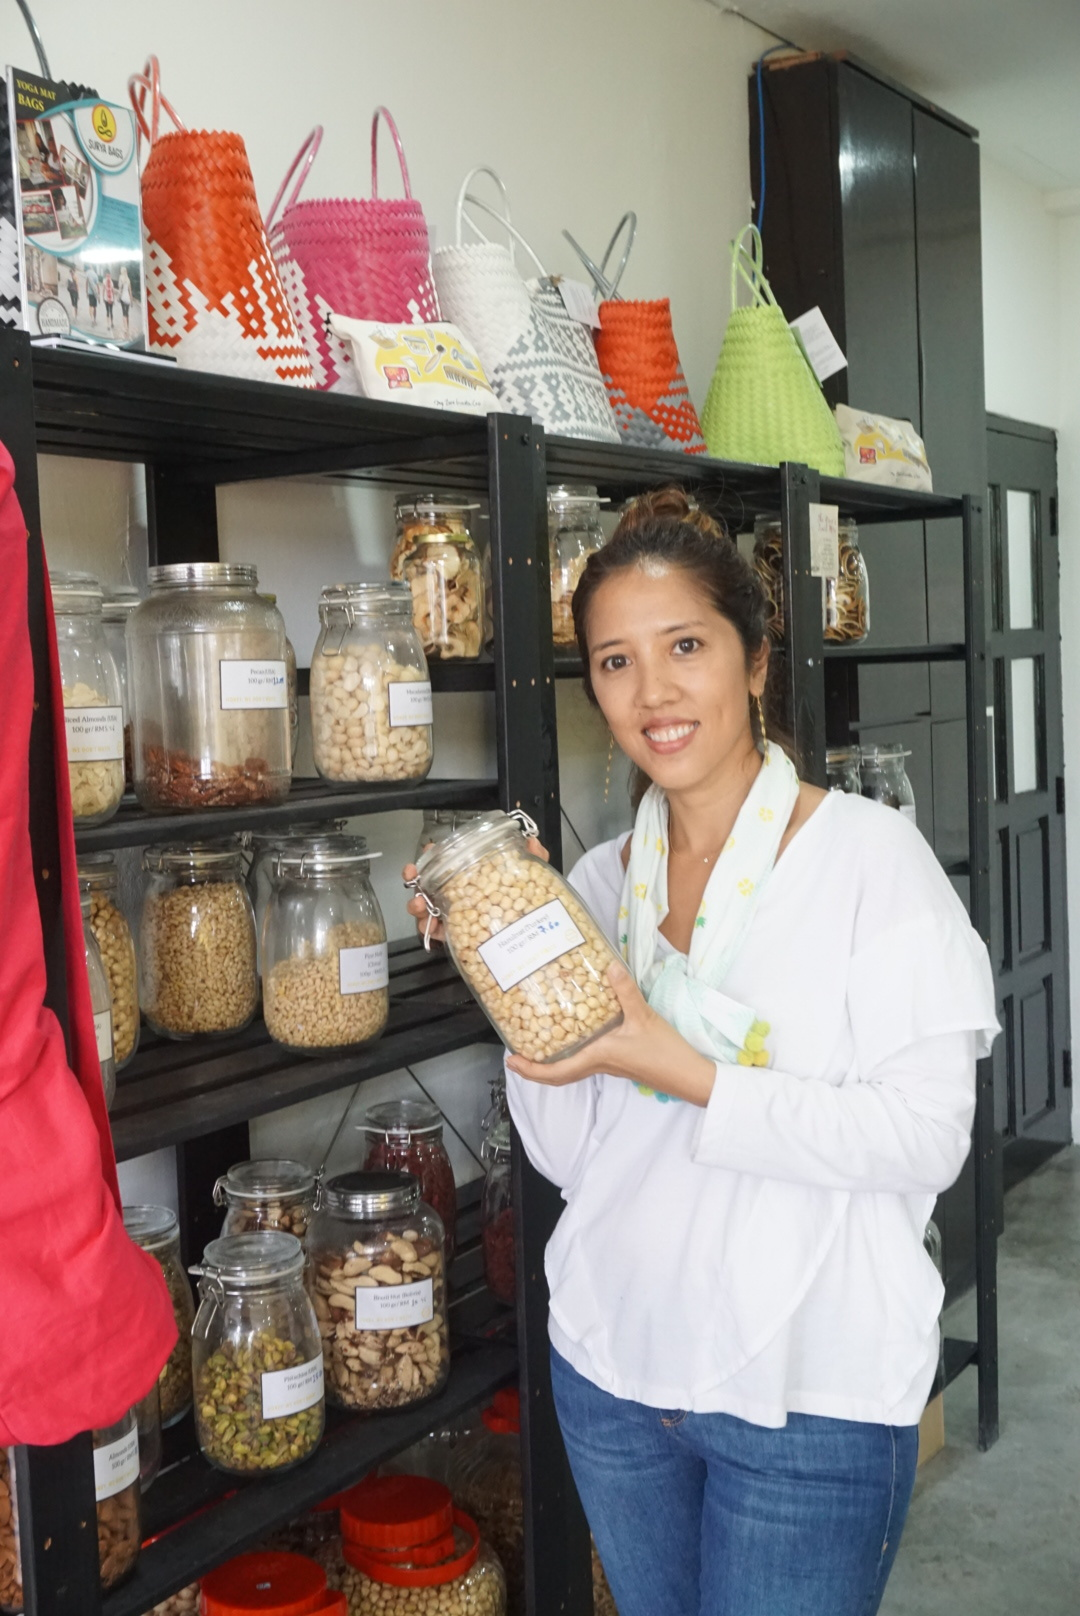 Farena checking out the dried foods section!